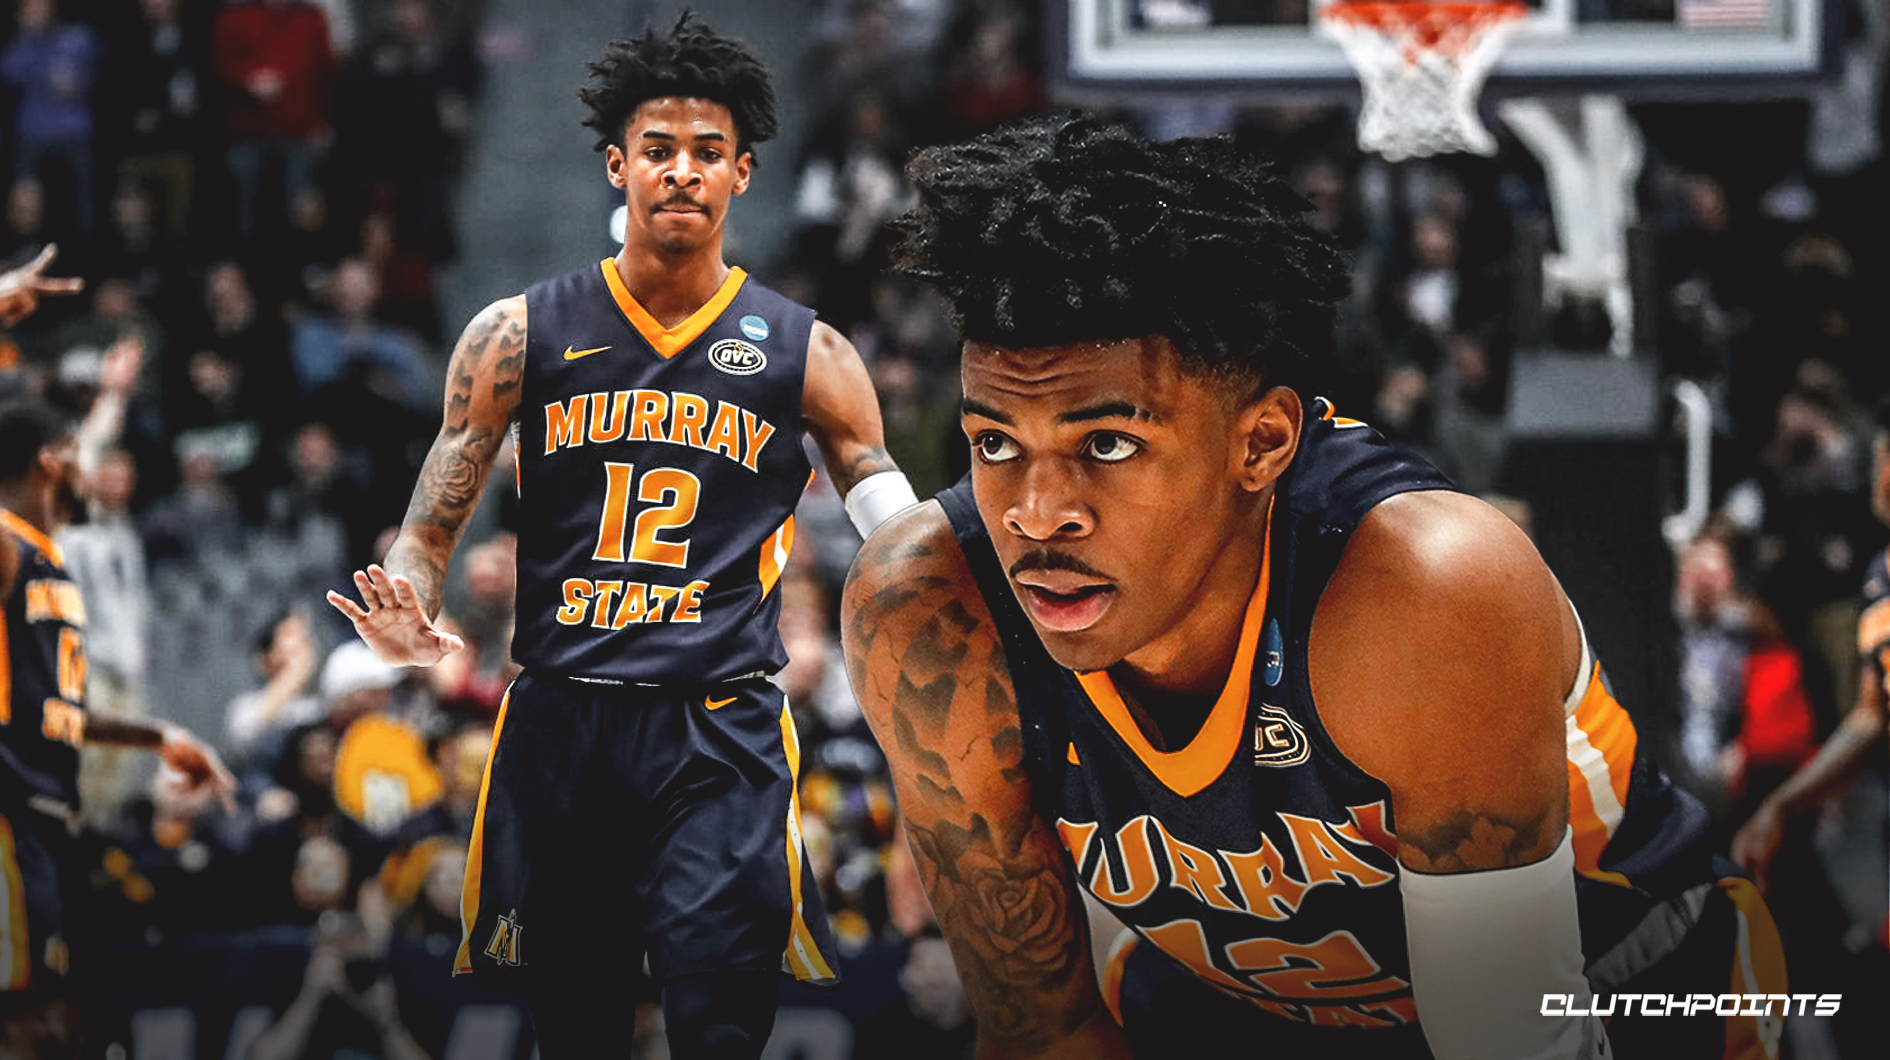 Ja Morant averaged 24.5 points, 10 assists, and 5.7 rebounds while scoring 49% from the field.